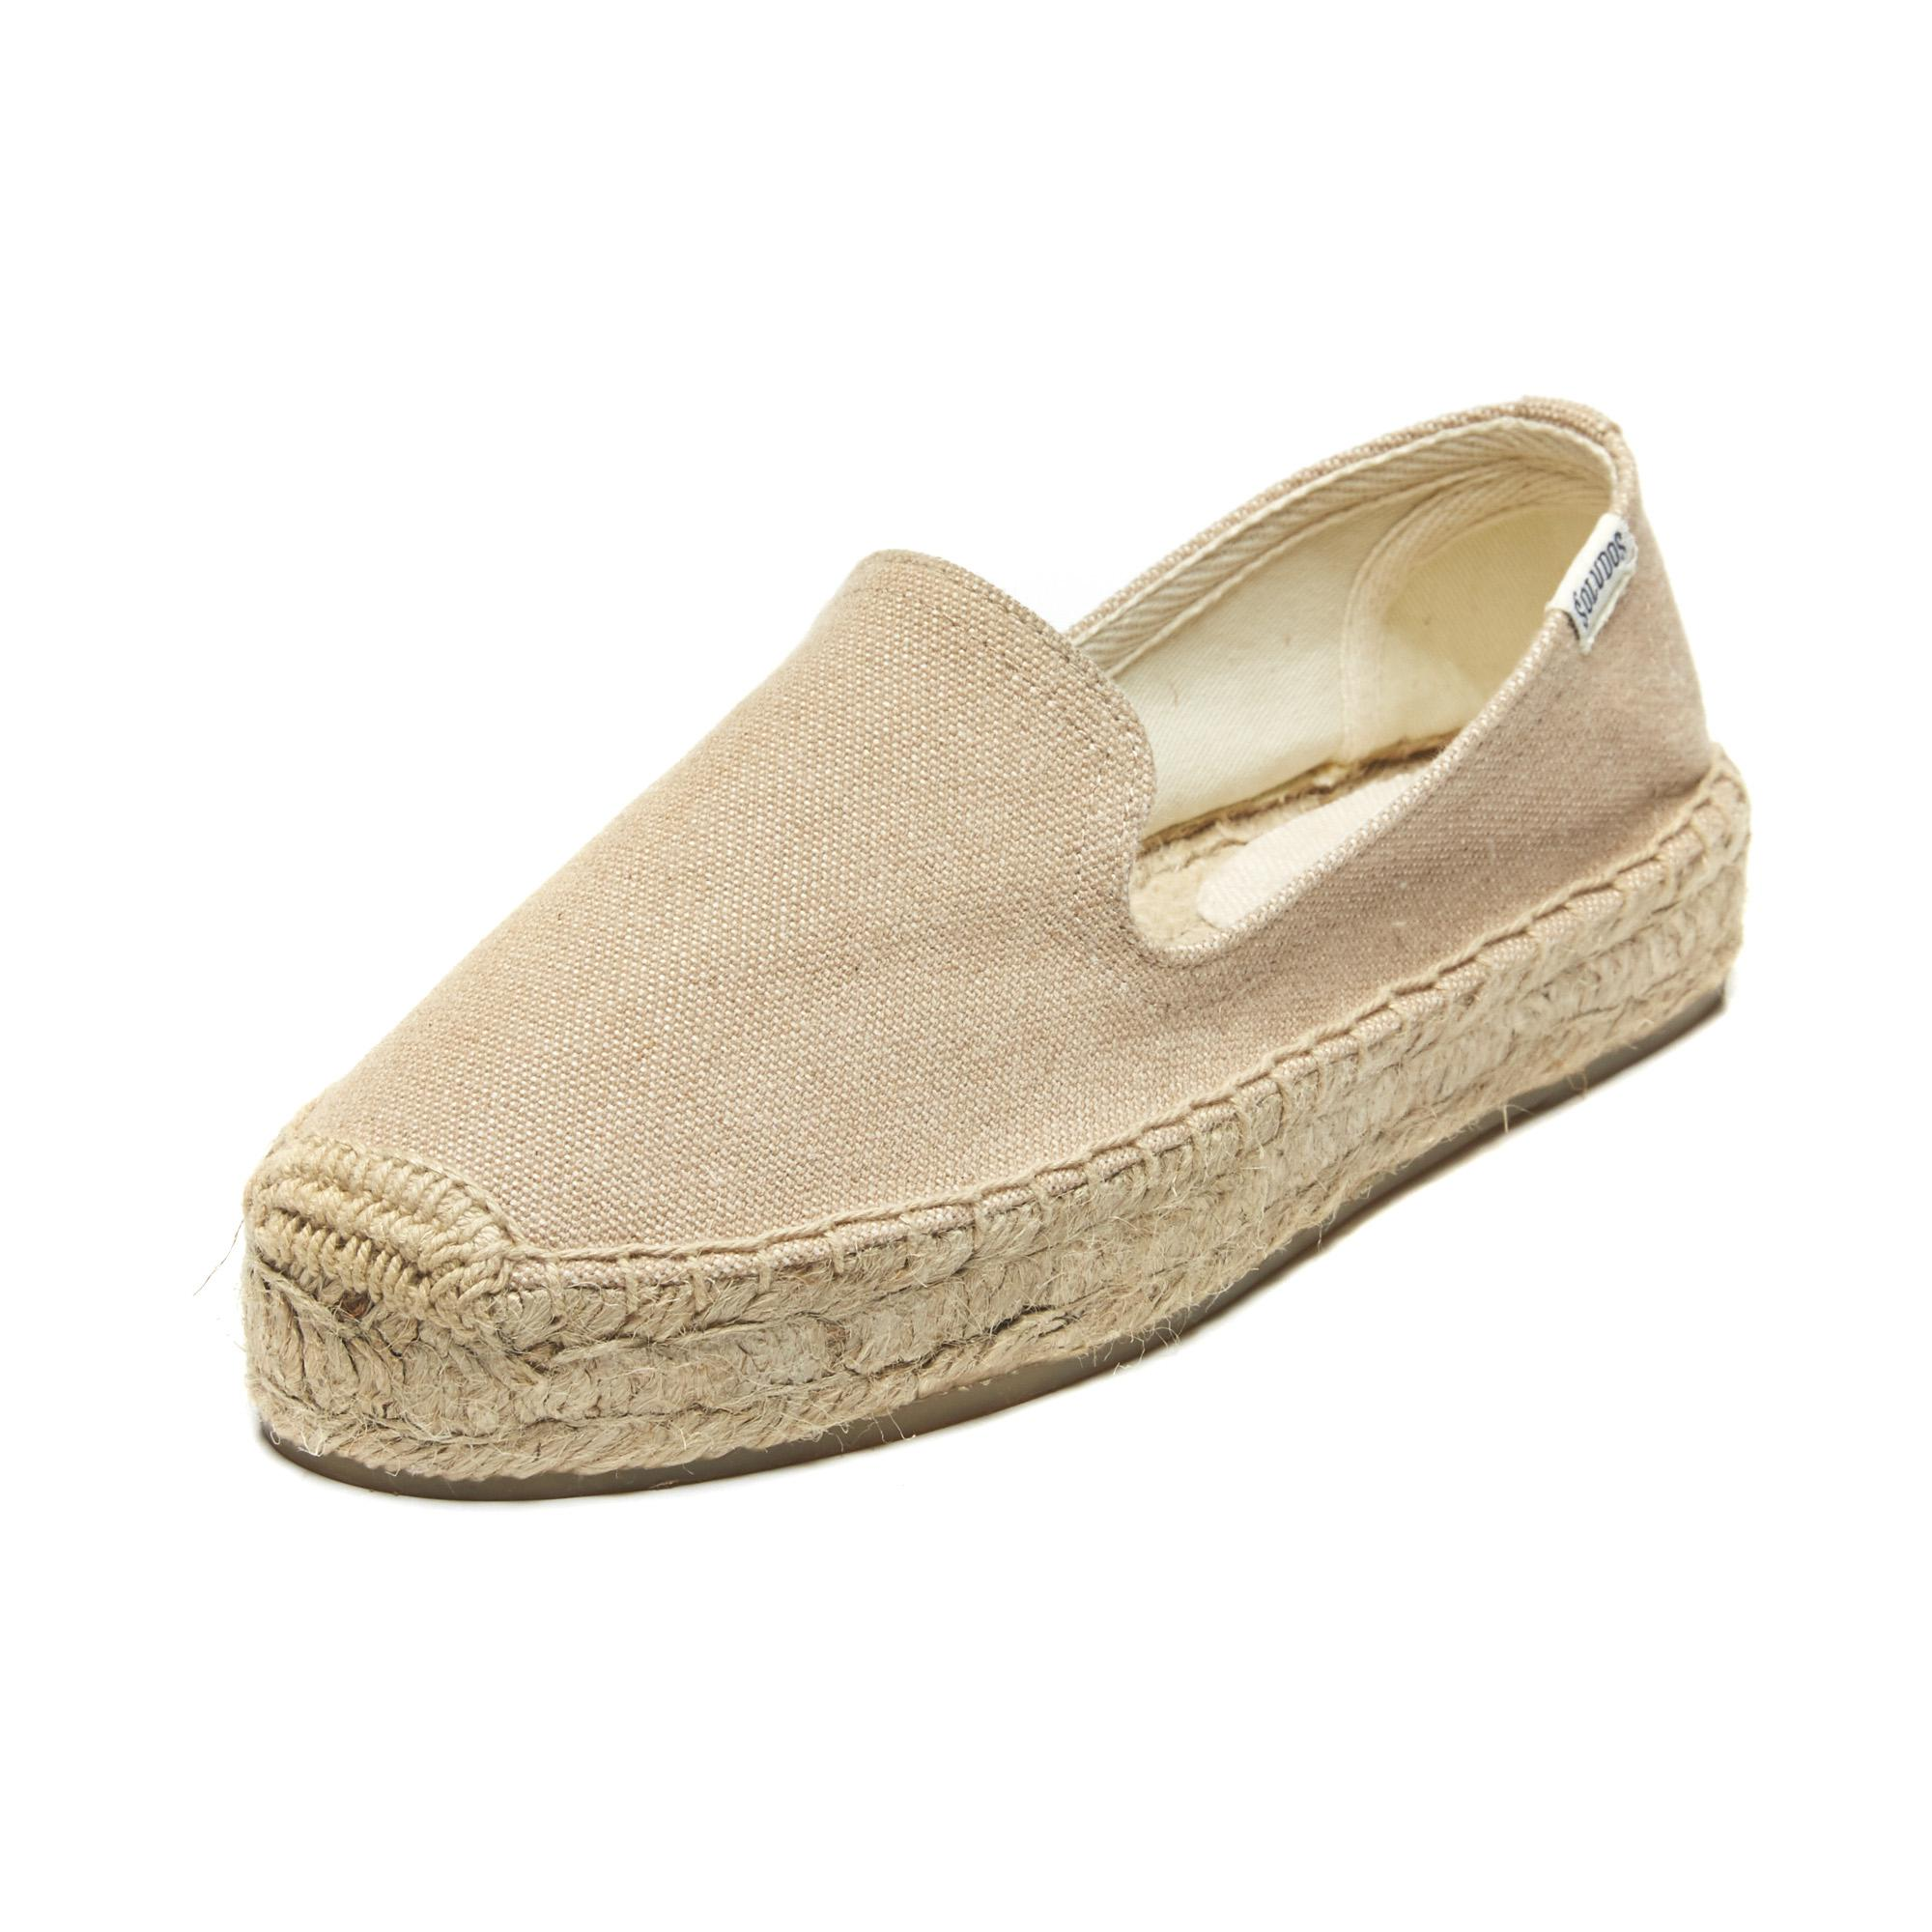 c5f41f5d3c7 Soludos Canvas Platform Smoking Slipper in Natural - Lyst